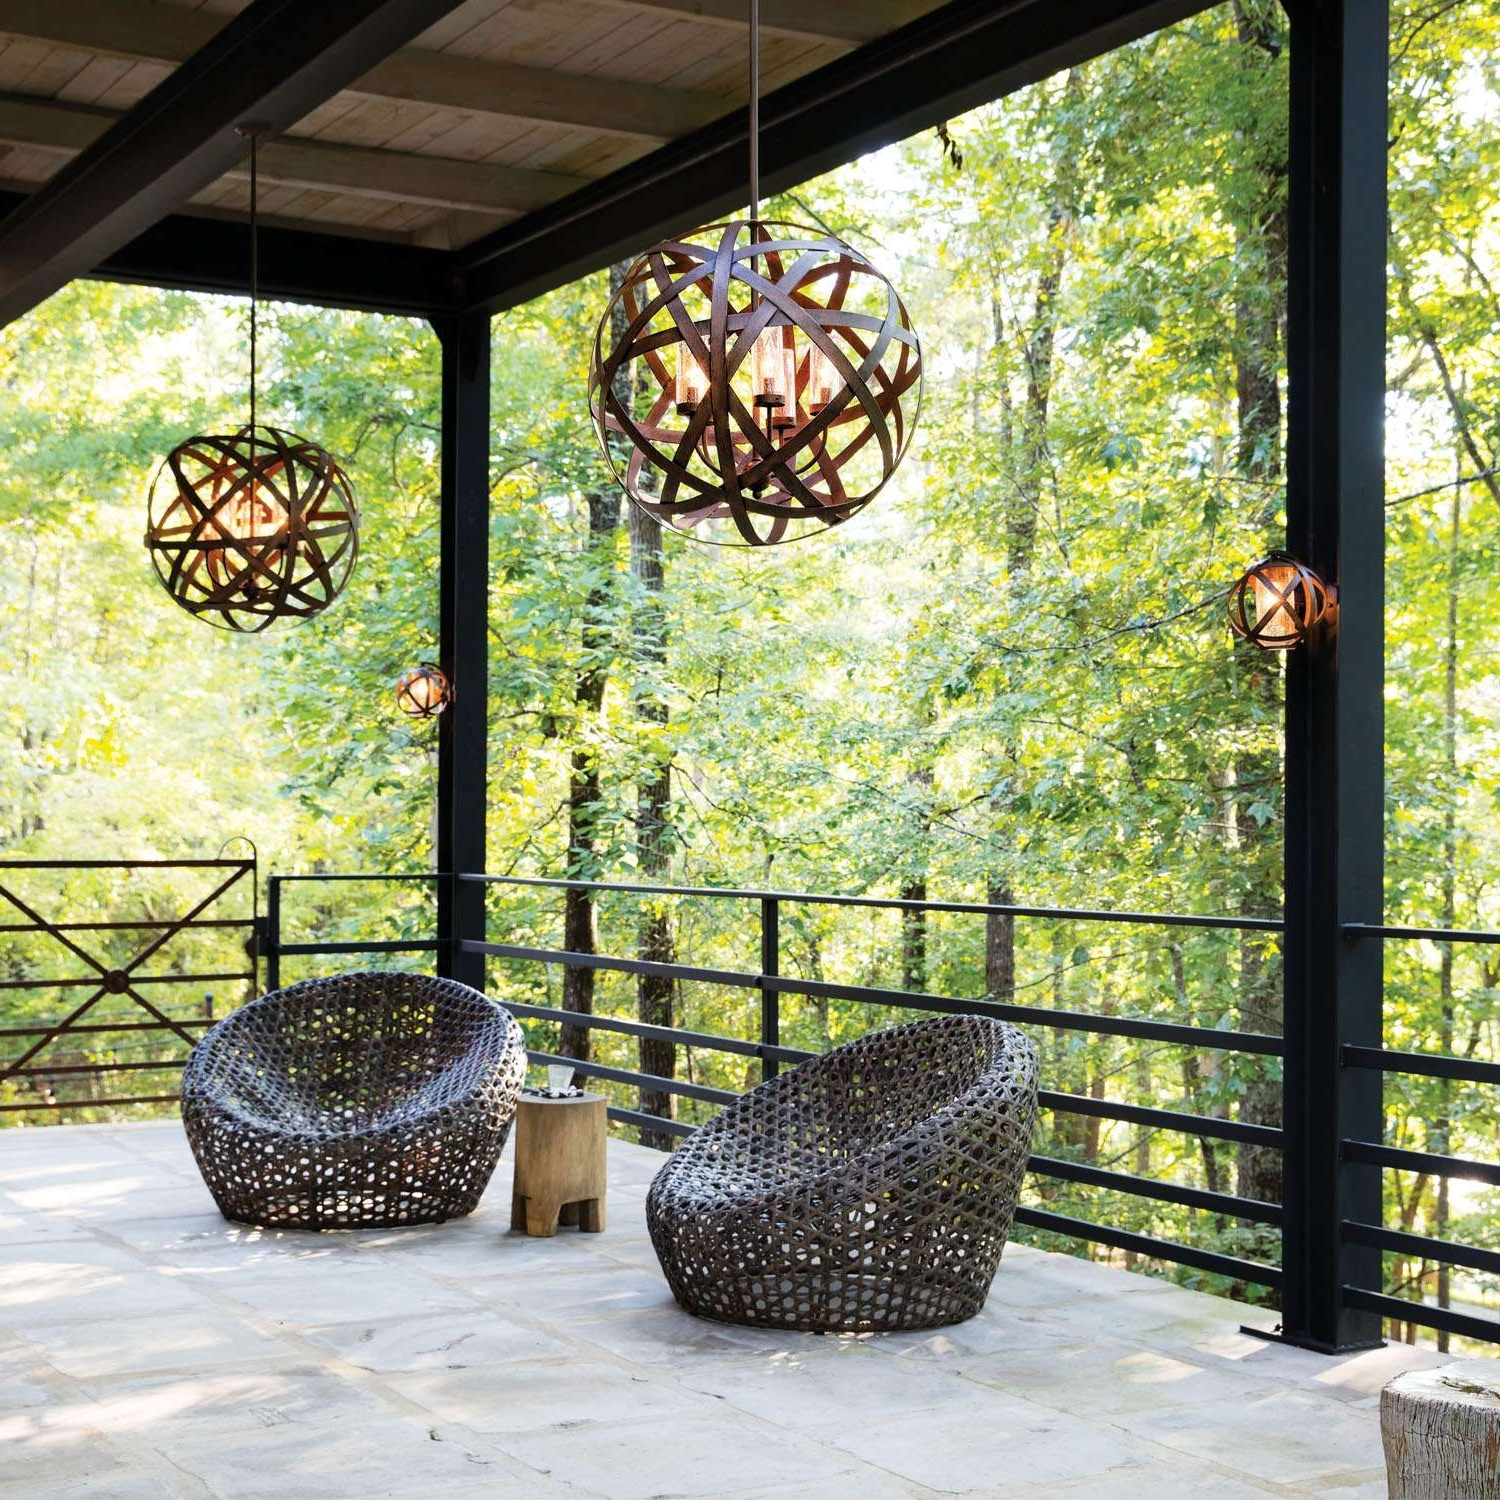 Current Beautiful And Elegant Hinkley Lighting — Awesome House Lighting Within Hinkley Lighting For Home Garden (View 9 of 20)